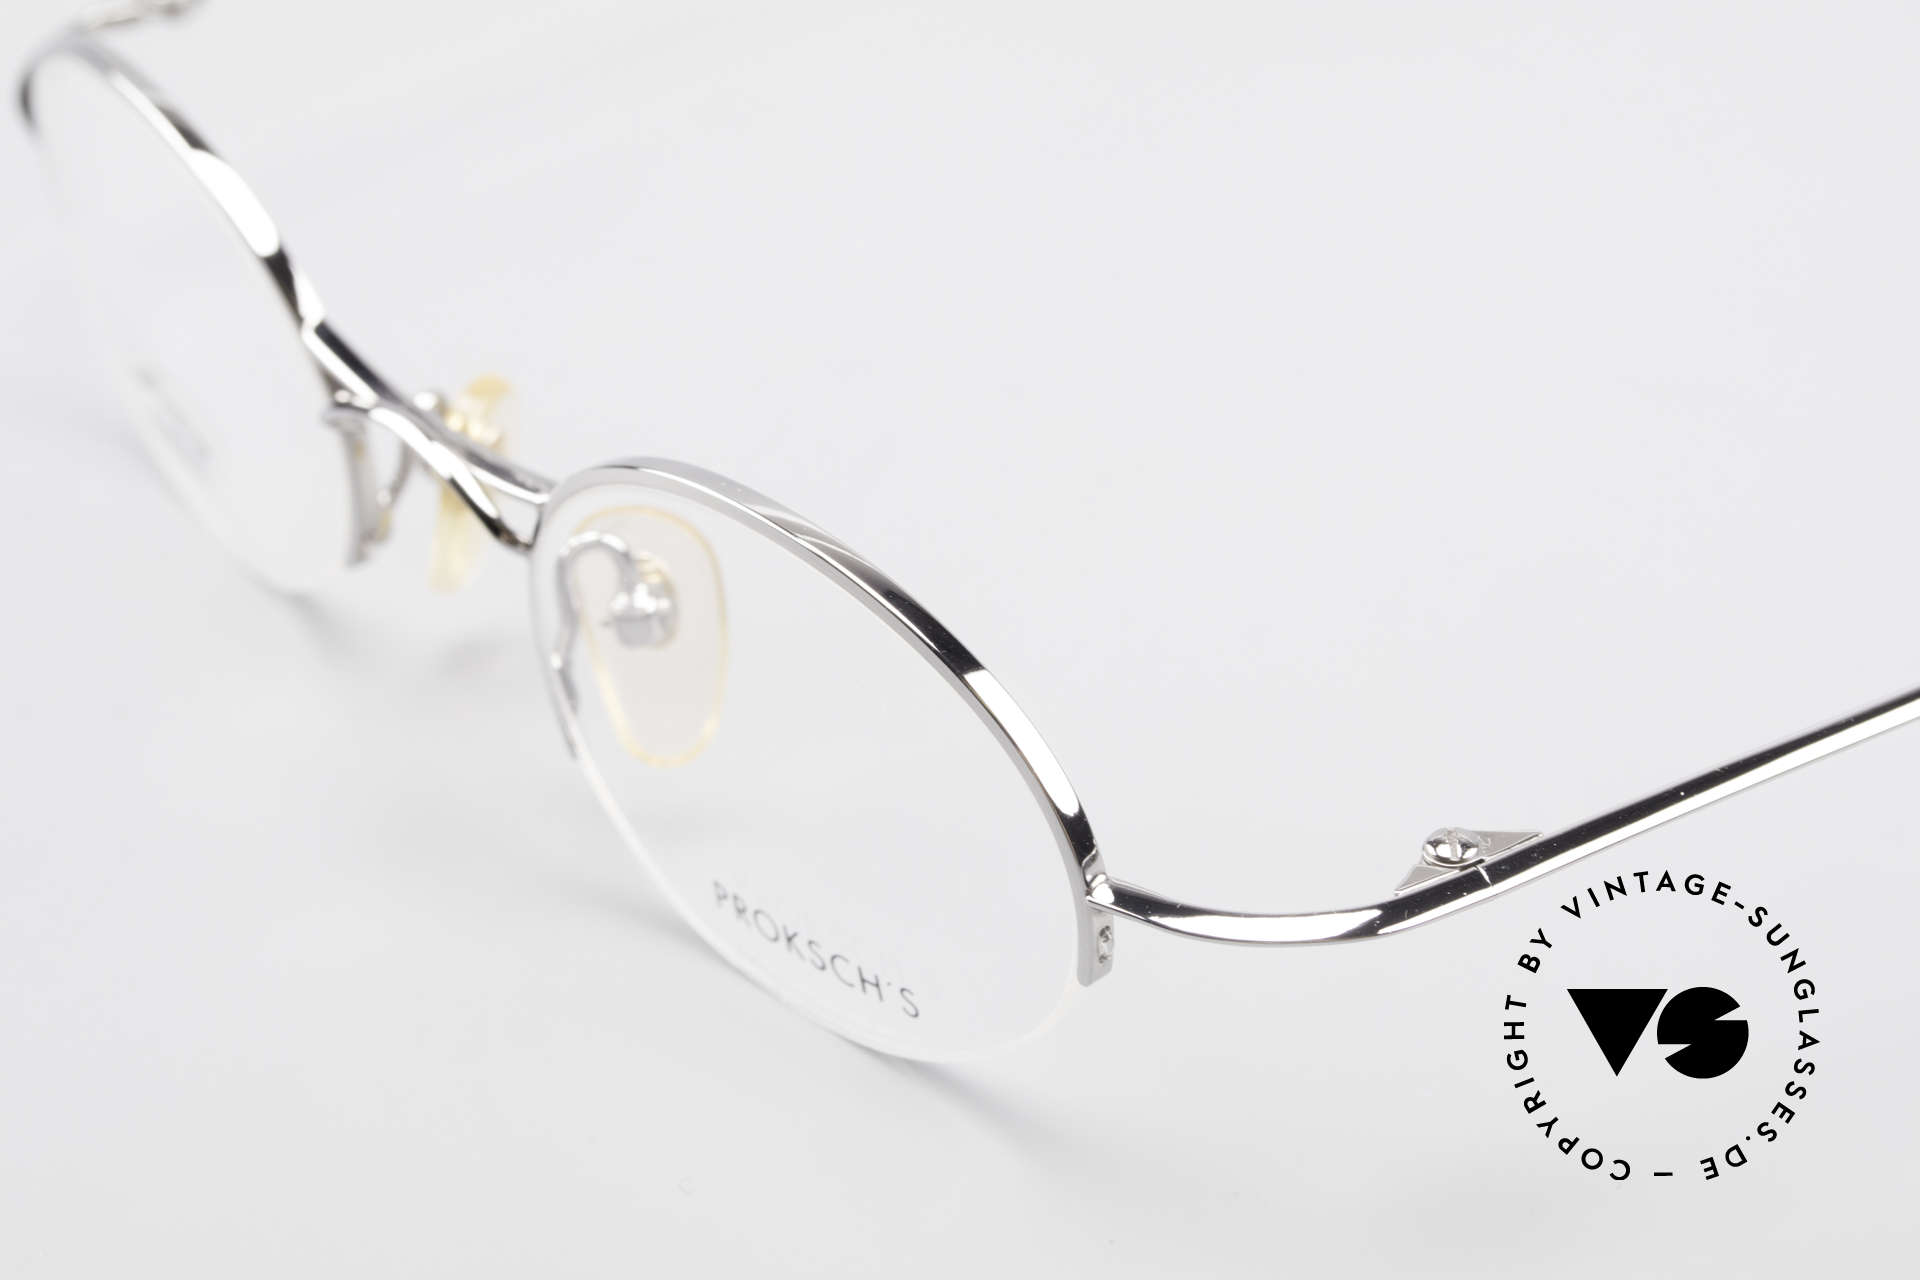 W Proksch's M35/2 Semi Rimless 90's Avantgarde, since 1998 the company Kaneko produces licensed, Made for Men